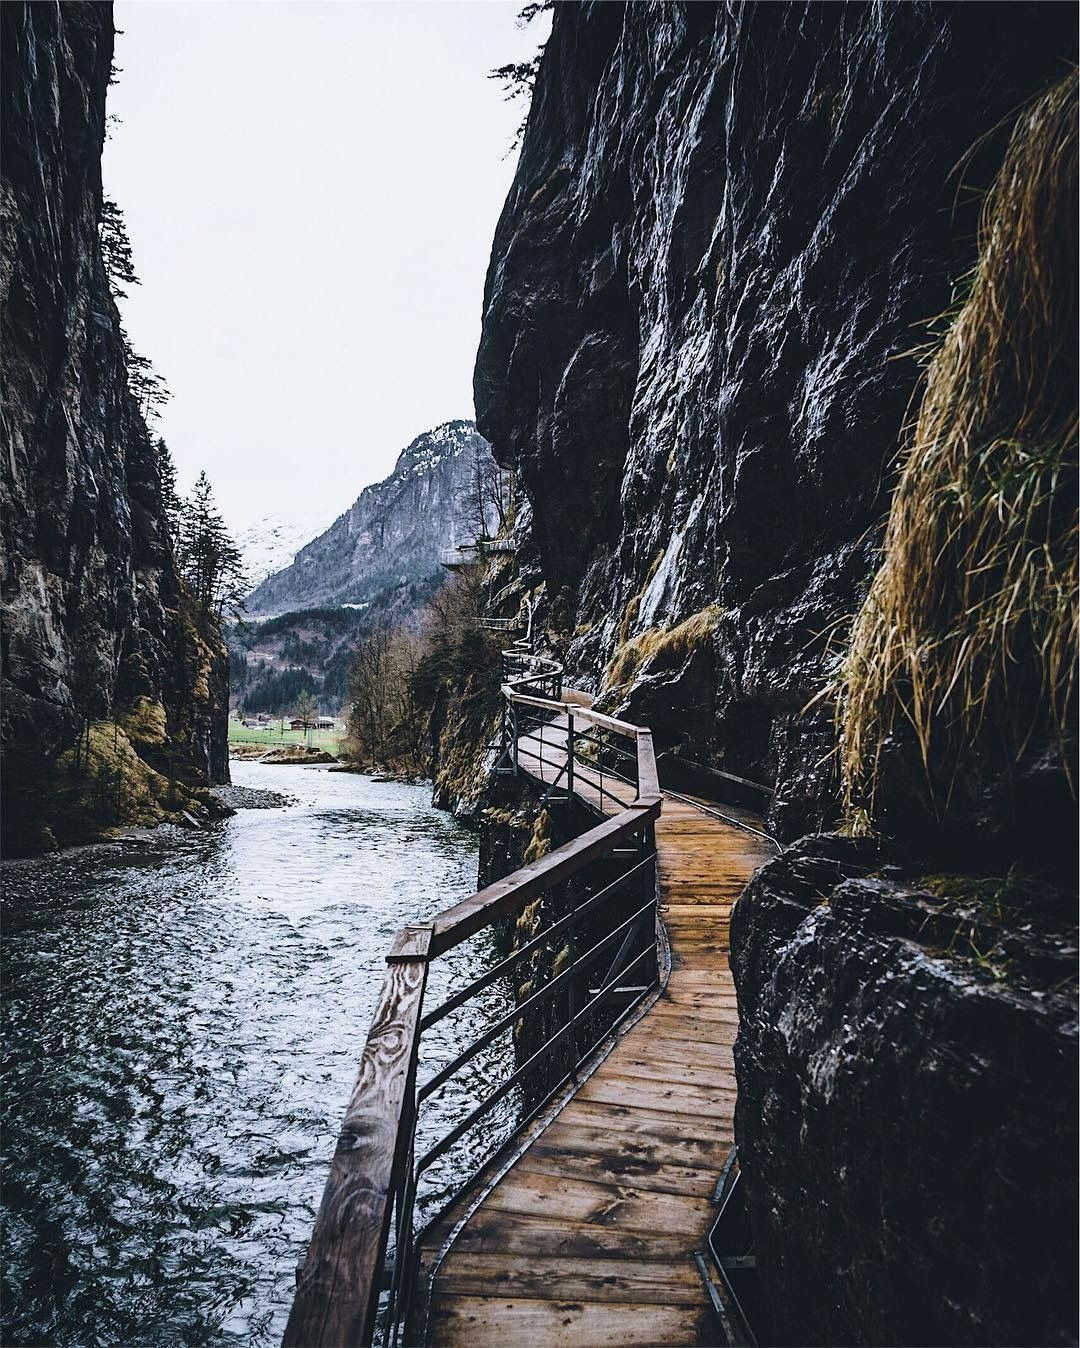 wish i were there now - theme | into the wild - wanderlust - trip - vacation - bucket list - explore - adventure - road trip - hiking - camping - nature - natural - wilderness - idea - ideas - inspiration - travel photography